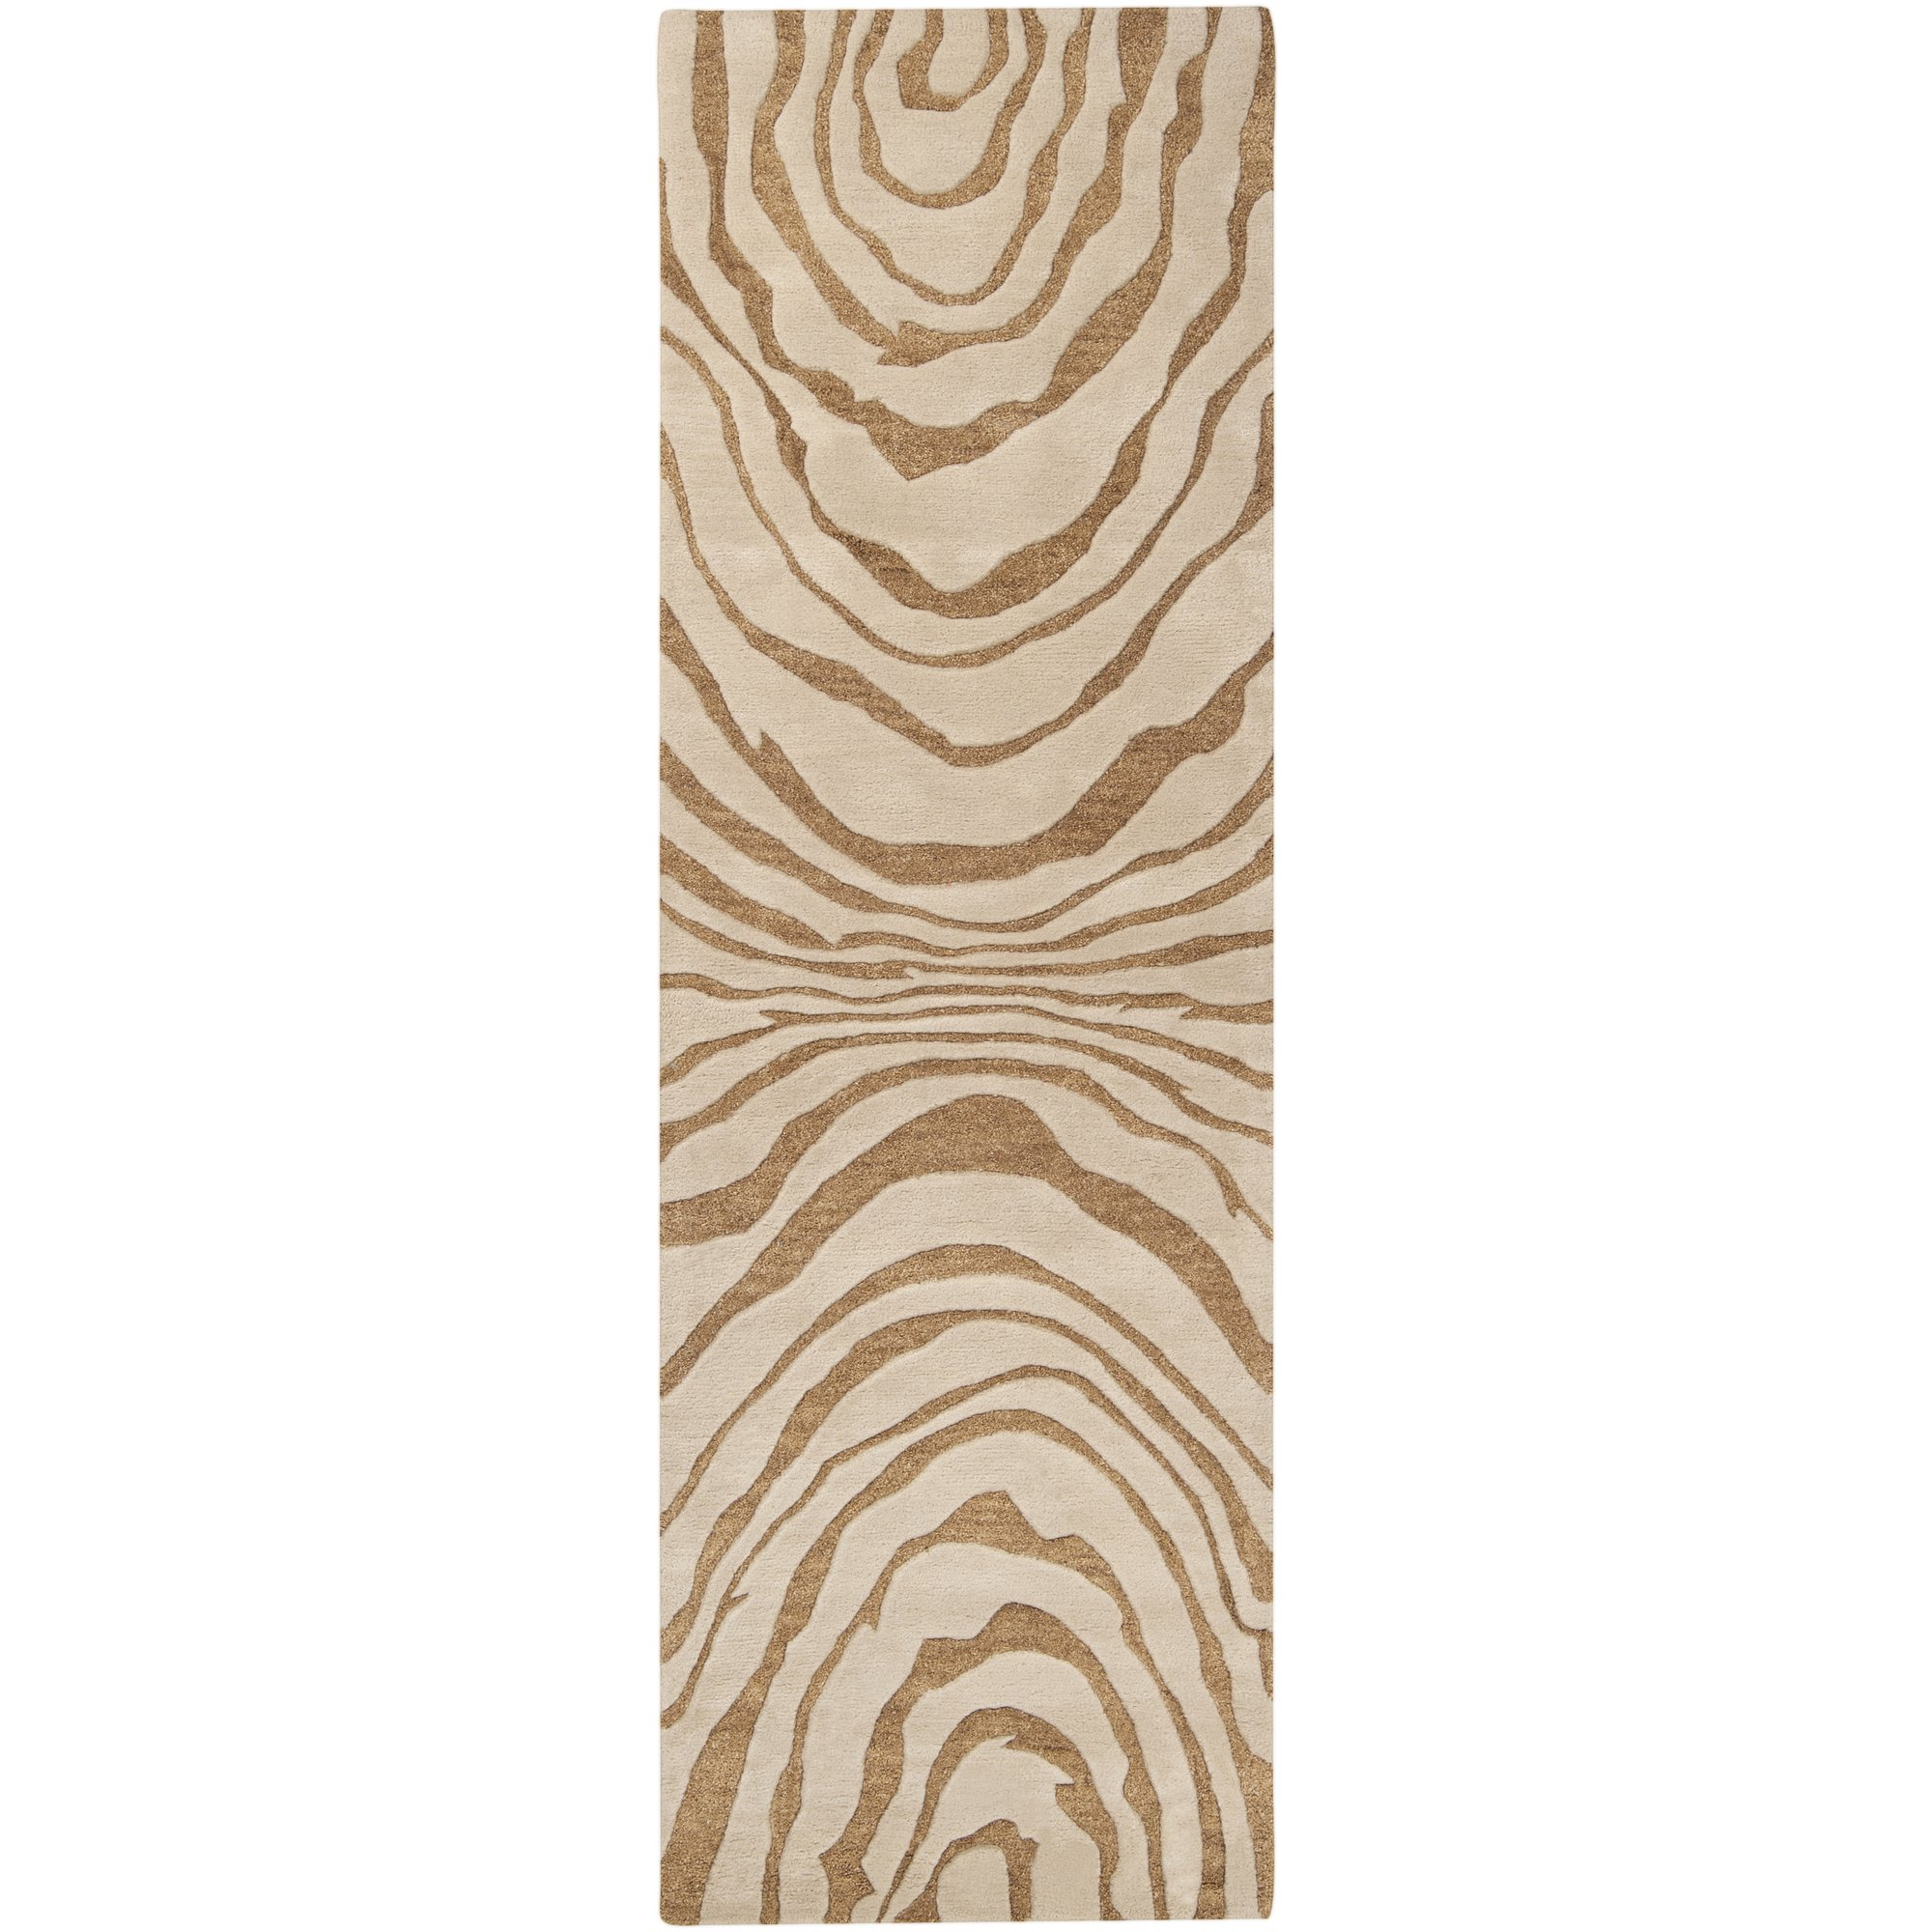 Surya Studio SR-113 Contemporary Hand Tufted 100% New Zealand Wool Ivory 2'6'' x 8' Abstract Runner by Surya